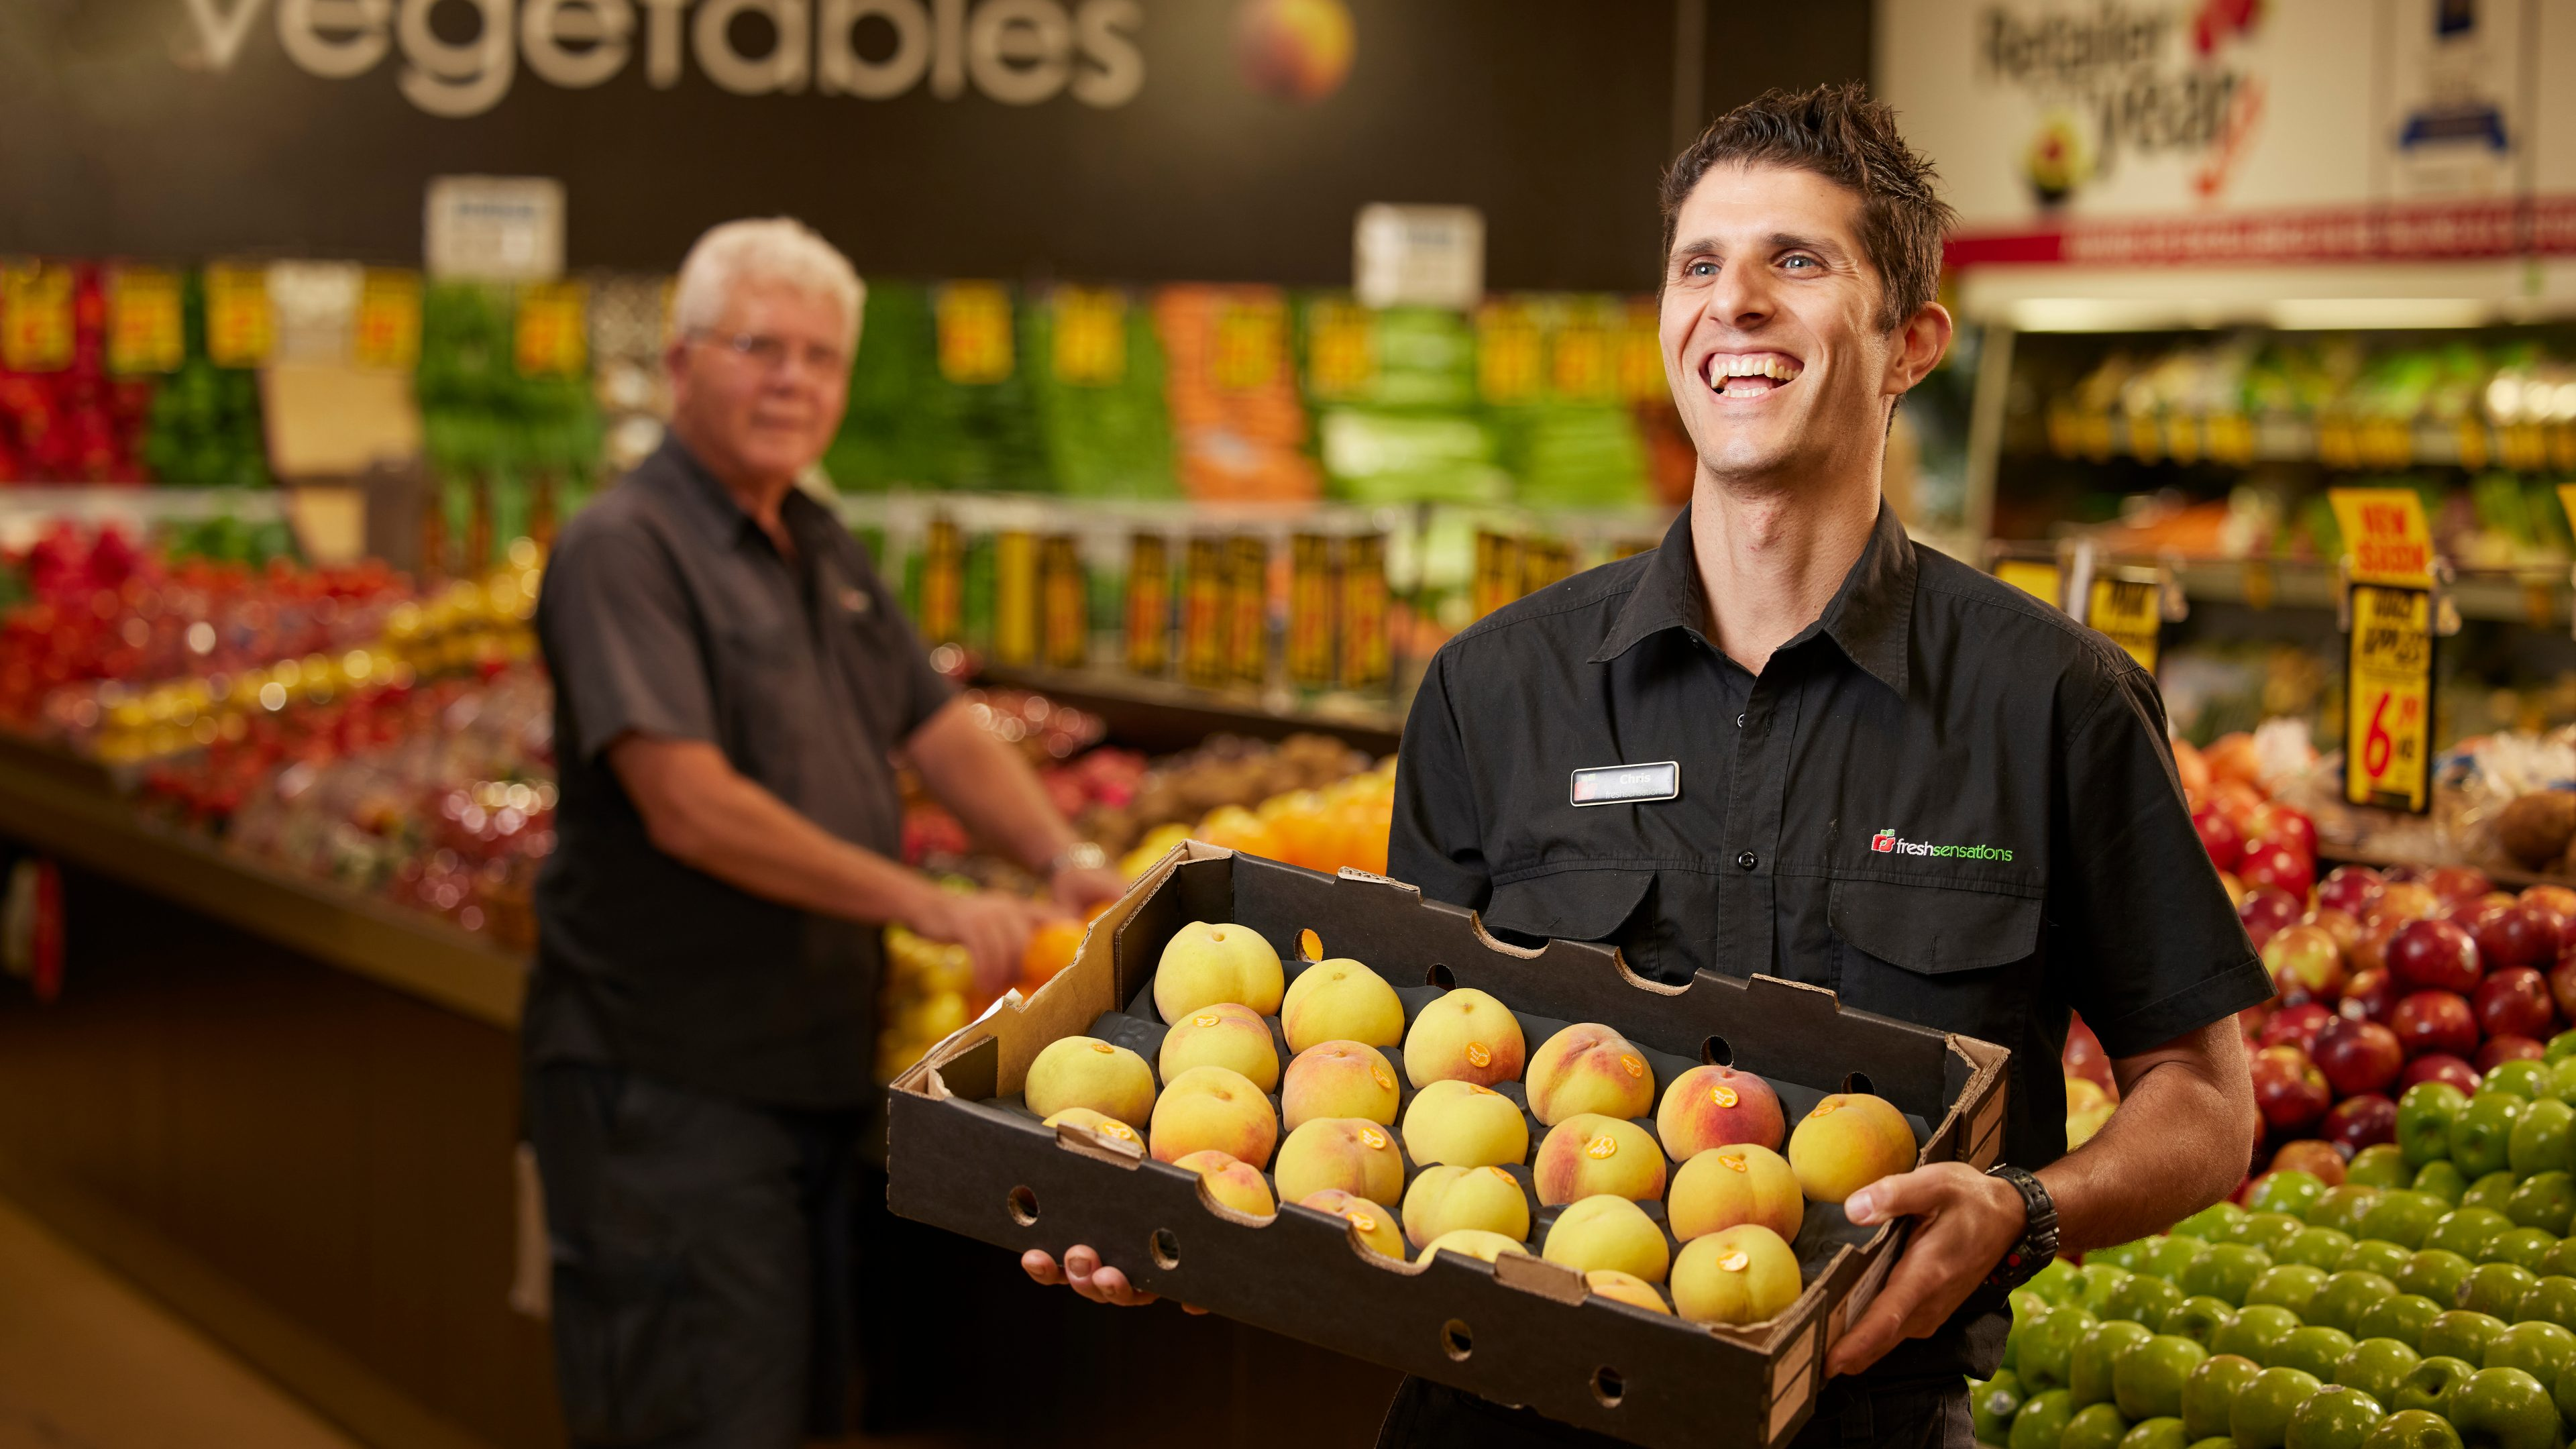 Local grocery store owner - financial services brand Cosca